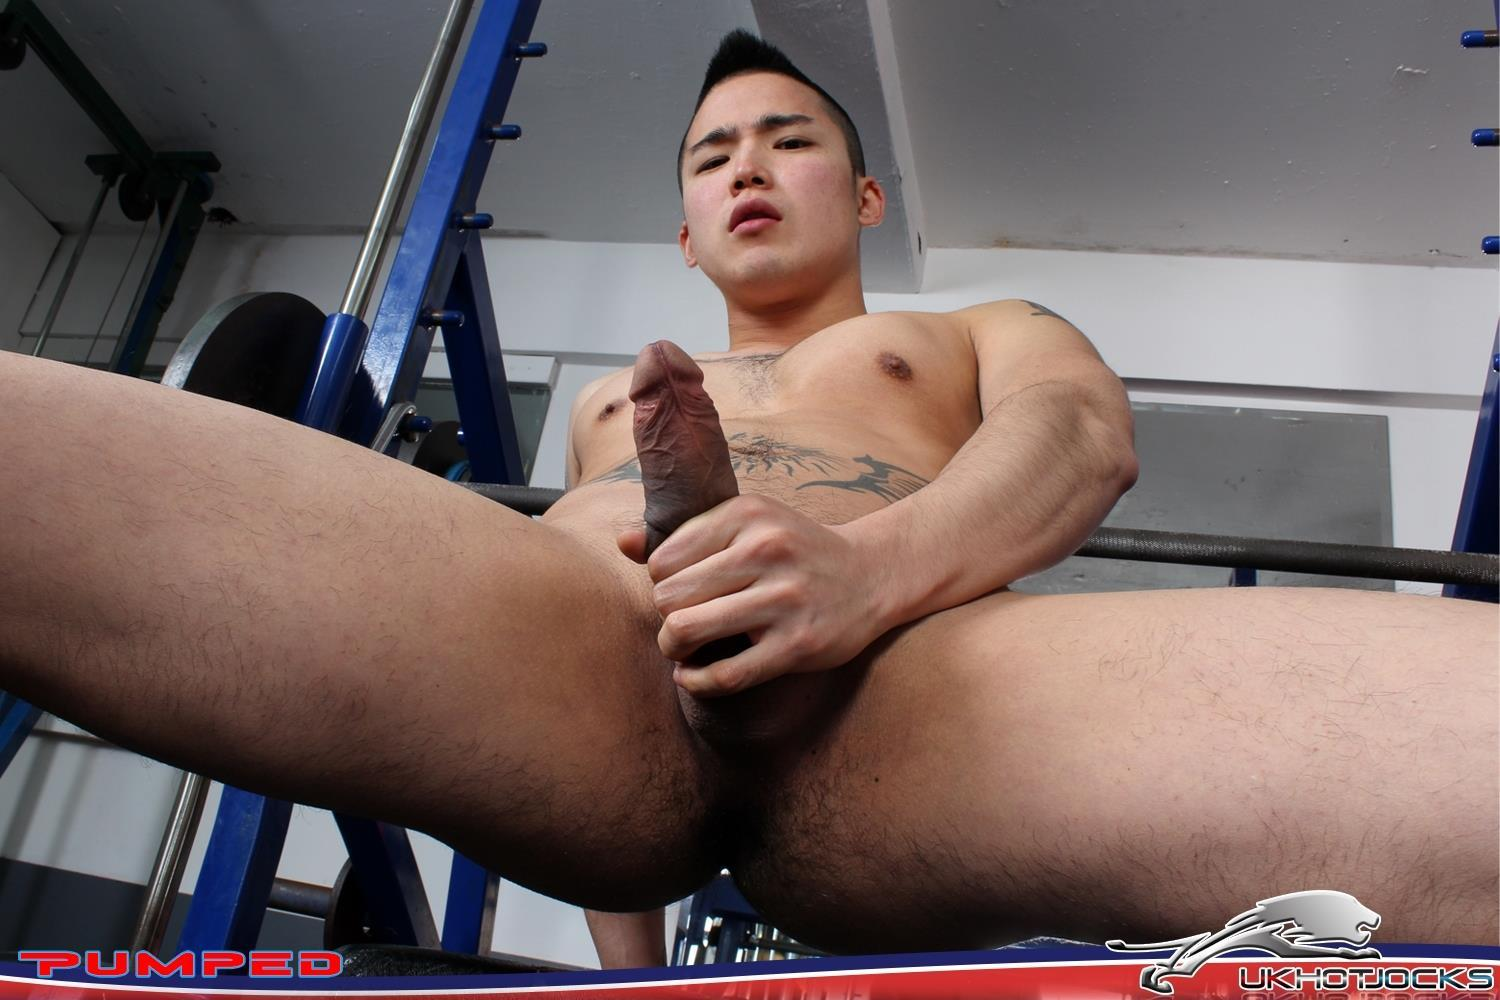 Asian big dicks hot men with speaking, would ask